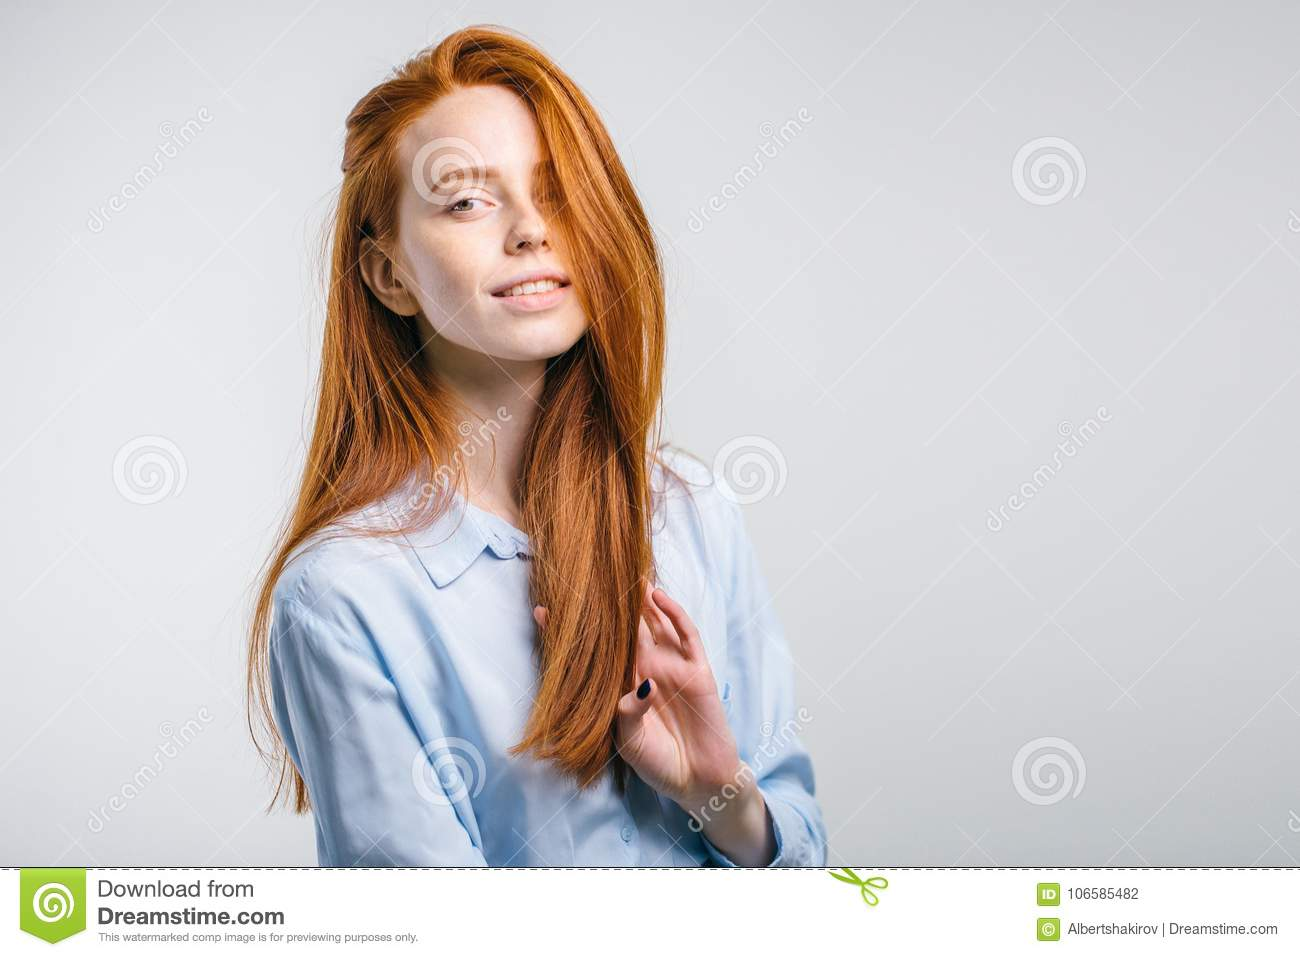 First redhead ginger